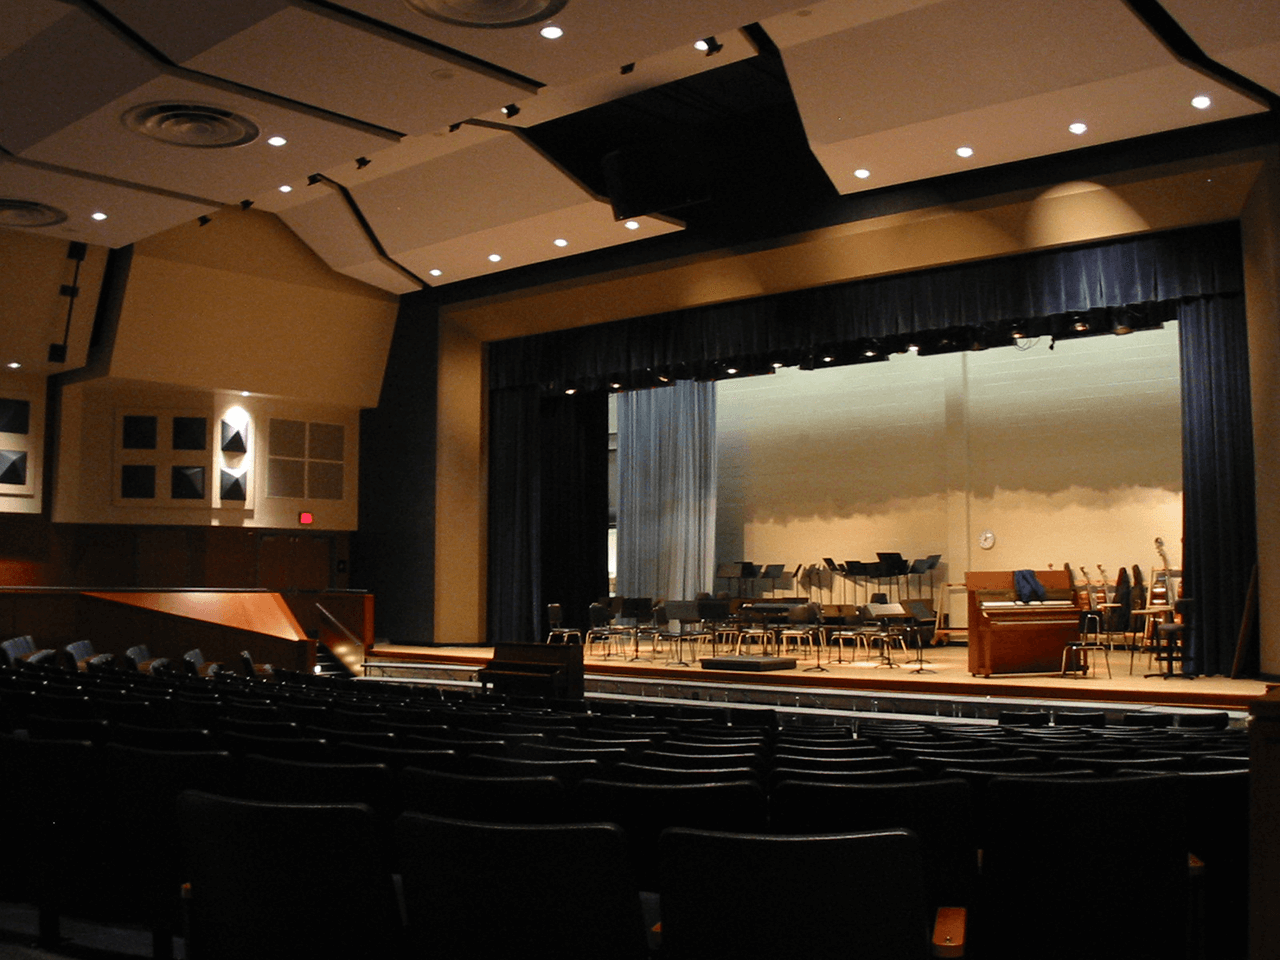 Sequoya_MiddleSchool_Auditorium